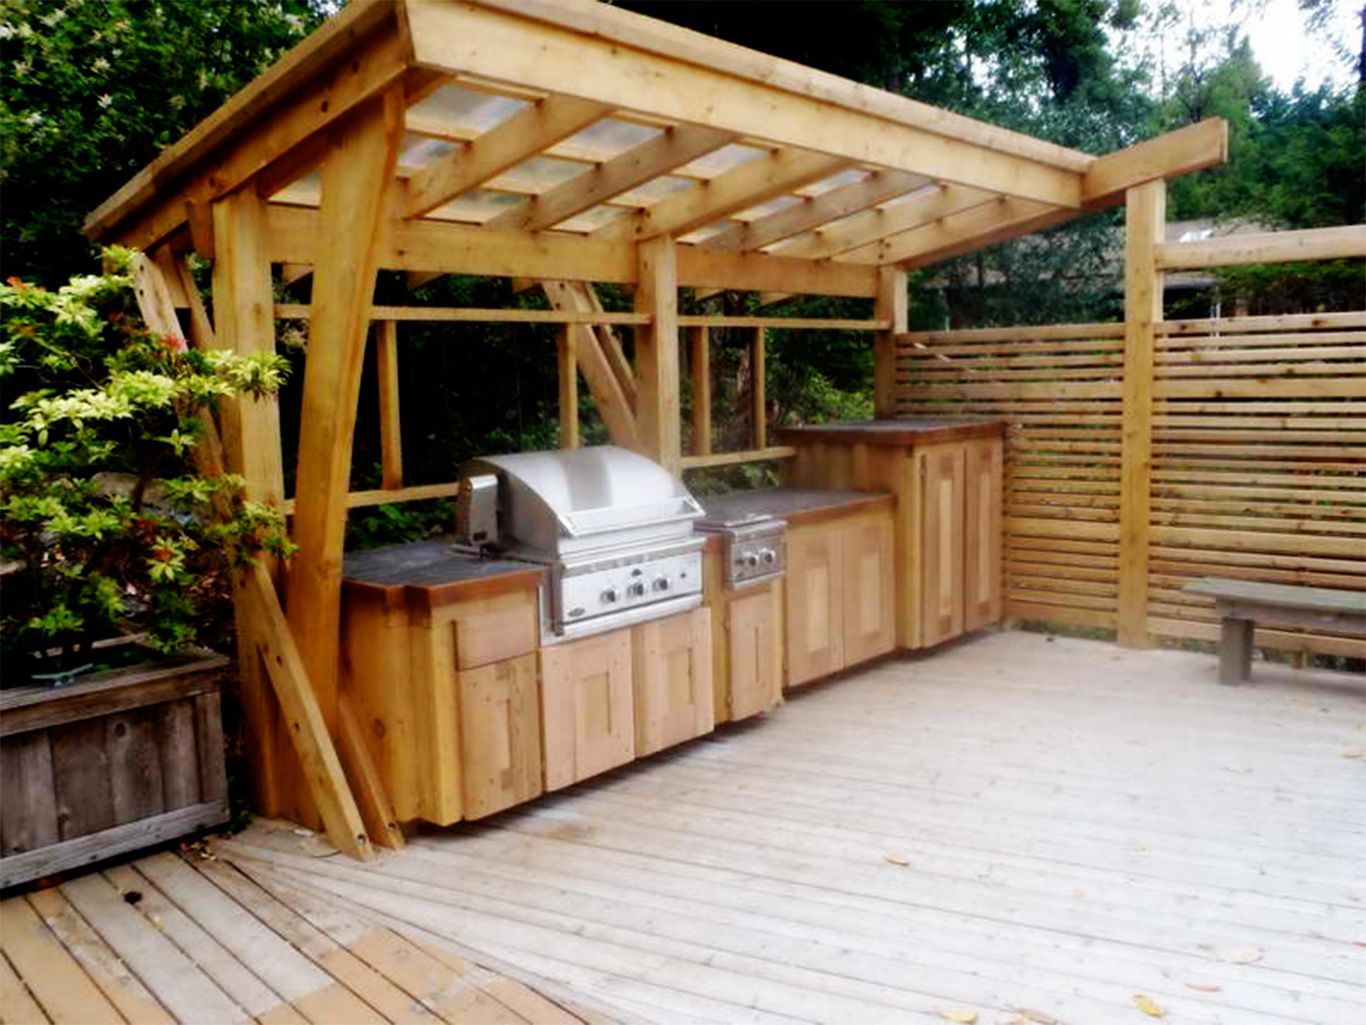 Austin Outdoor Kitchens Tin Roof Outdoor Kitchen Design Outdoor Kitchen Pergola